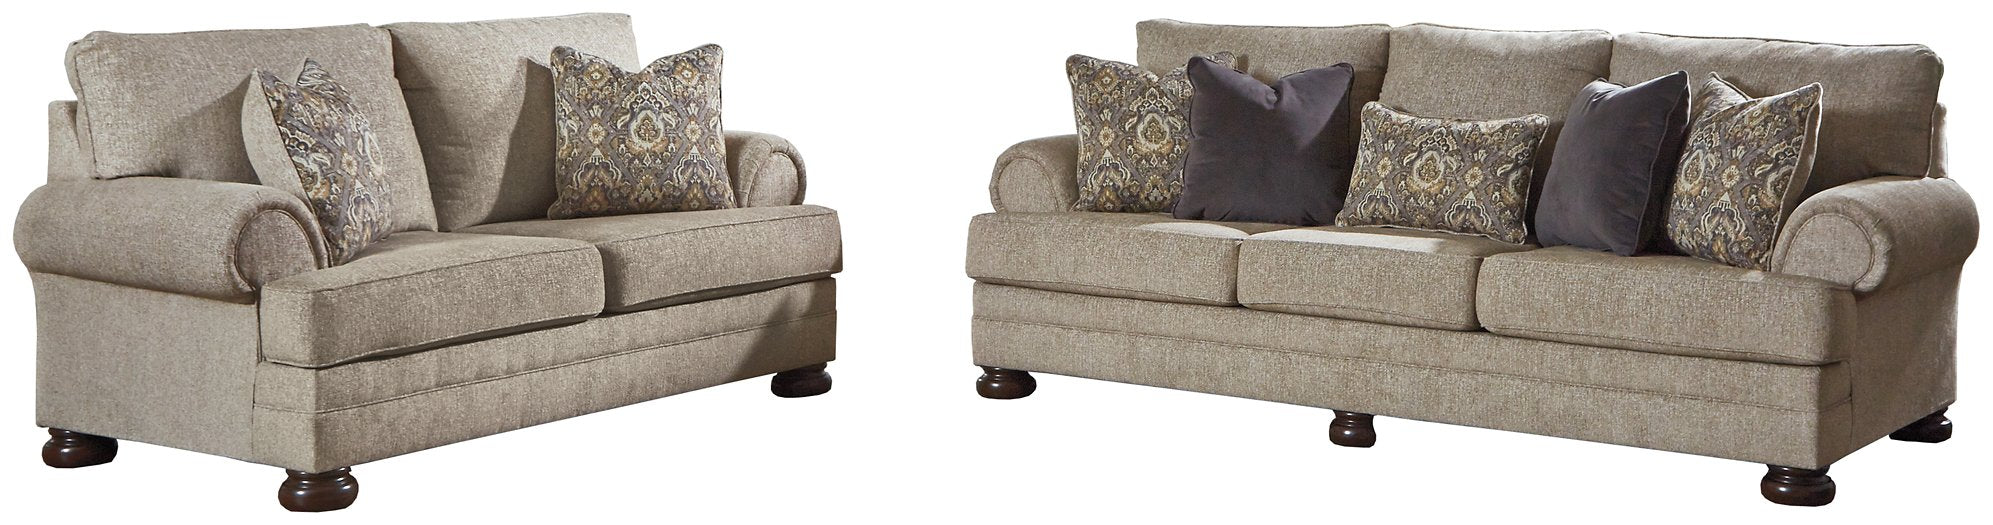 Kananwood Signature Design 2-Piece Living Room Set